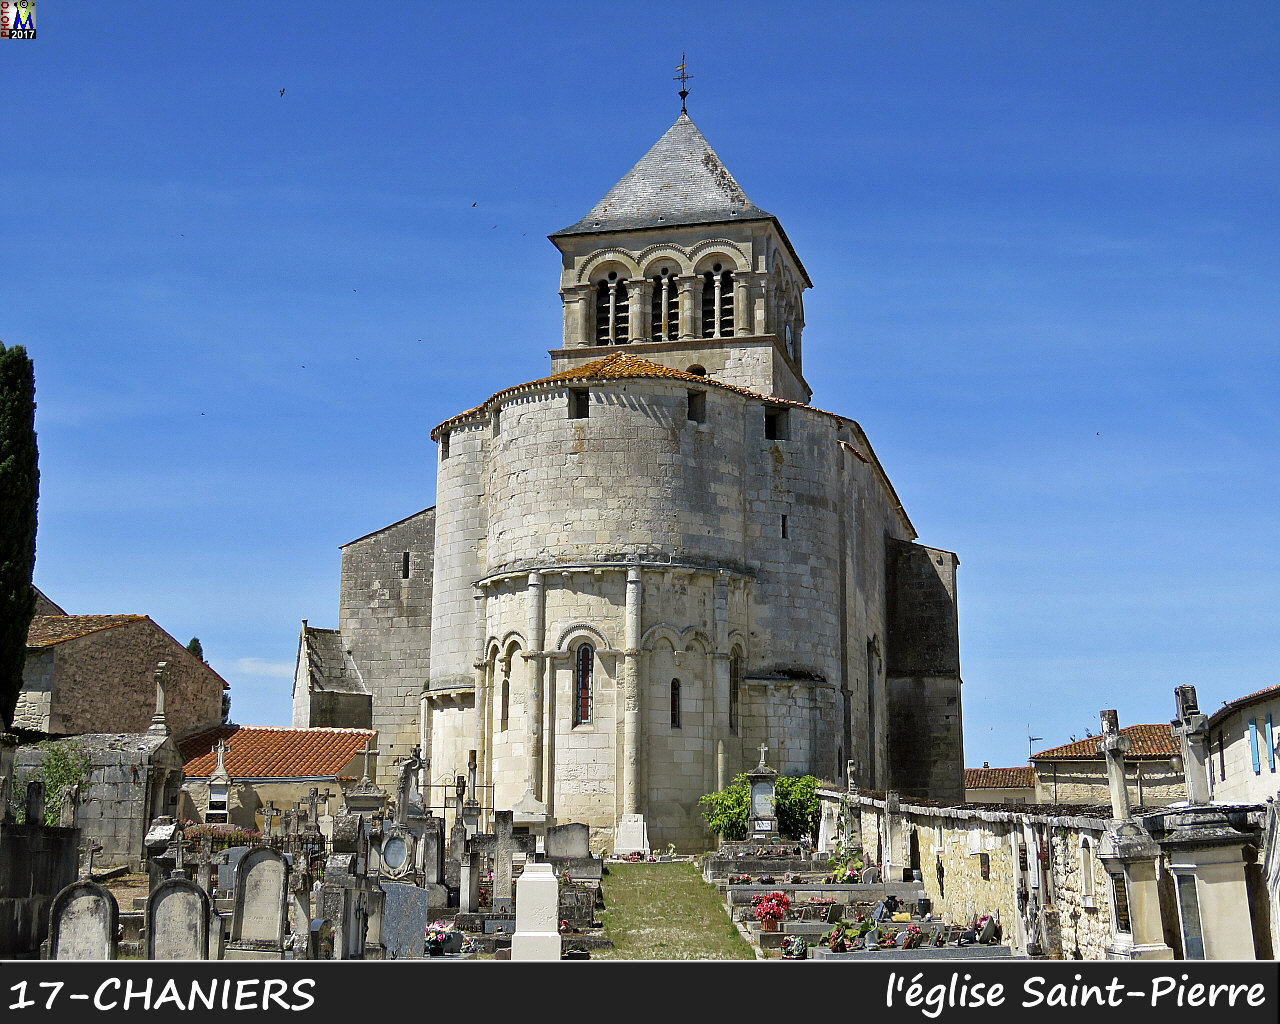 17CHANIERS_eglise_1002.jpg